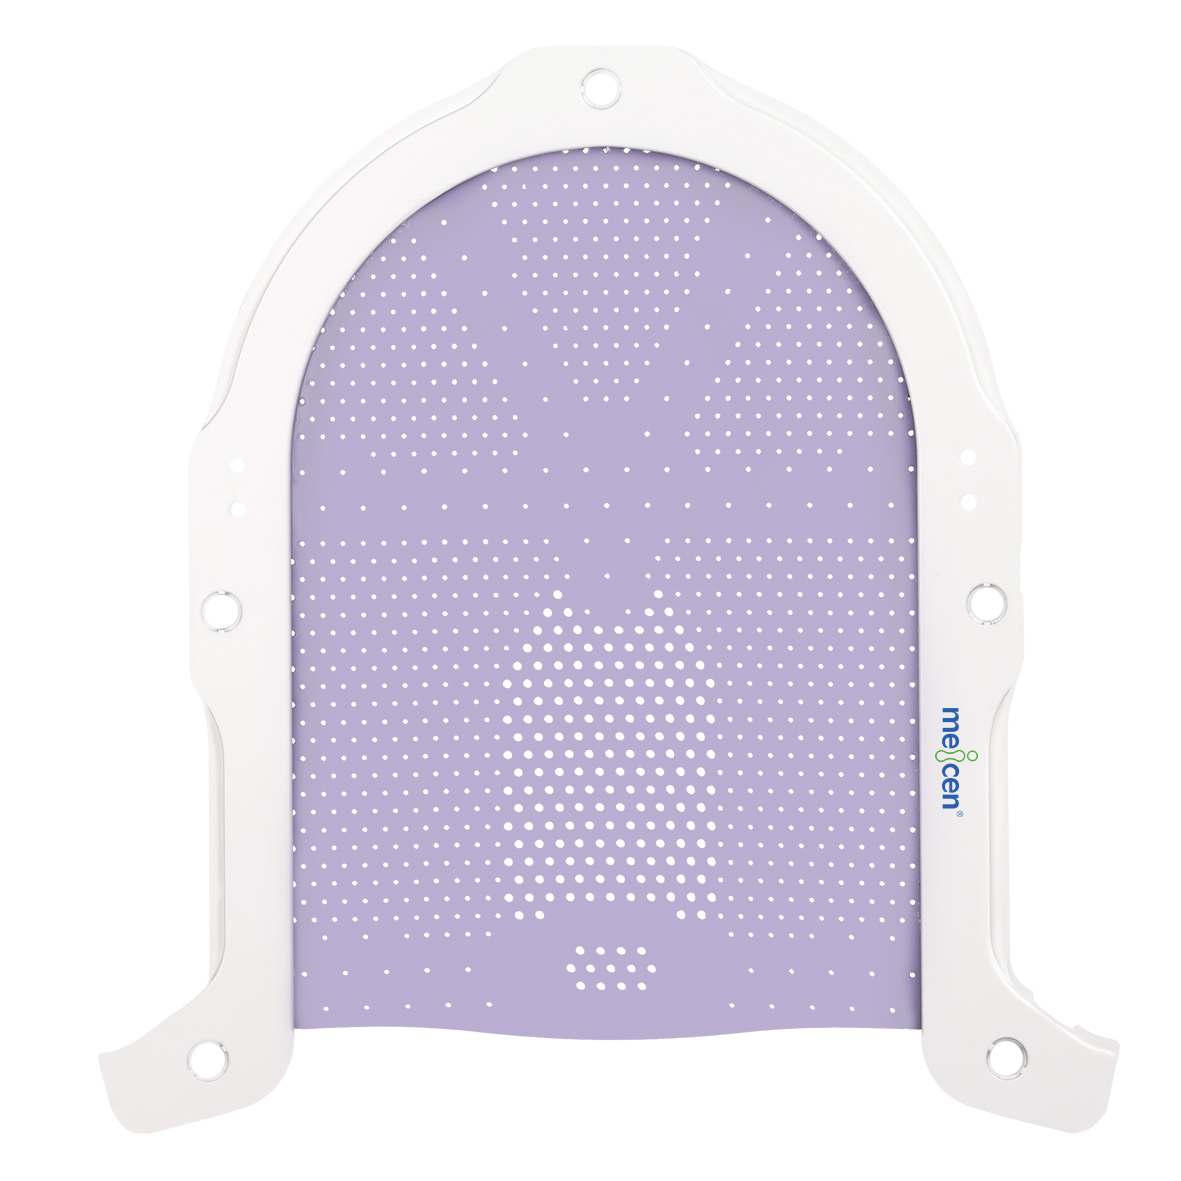 Meicen Violet S-Shaped Head Mask, thermopalstic mask for radiotherapy positioning